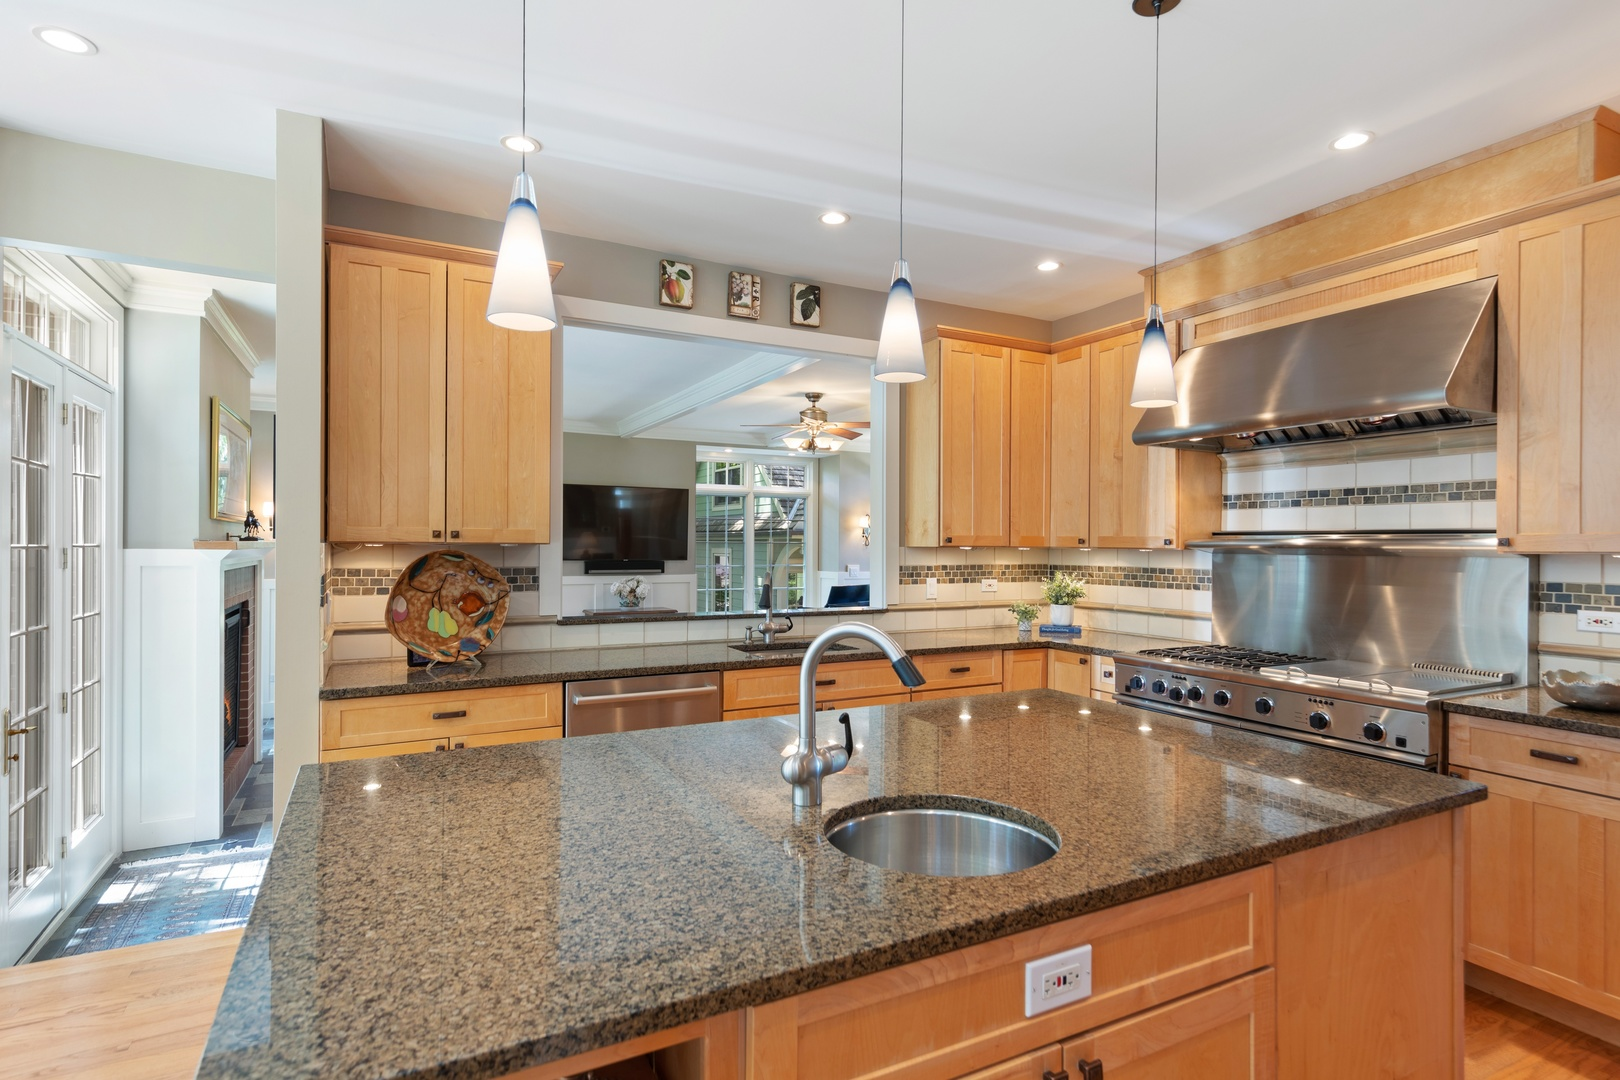 828 South GRANT, Hinsdale, Illinois, 60521